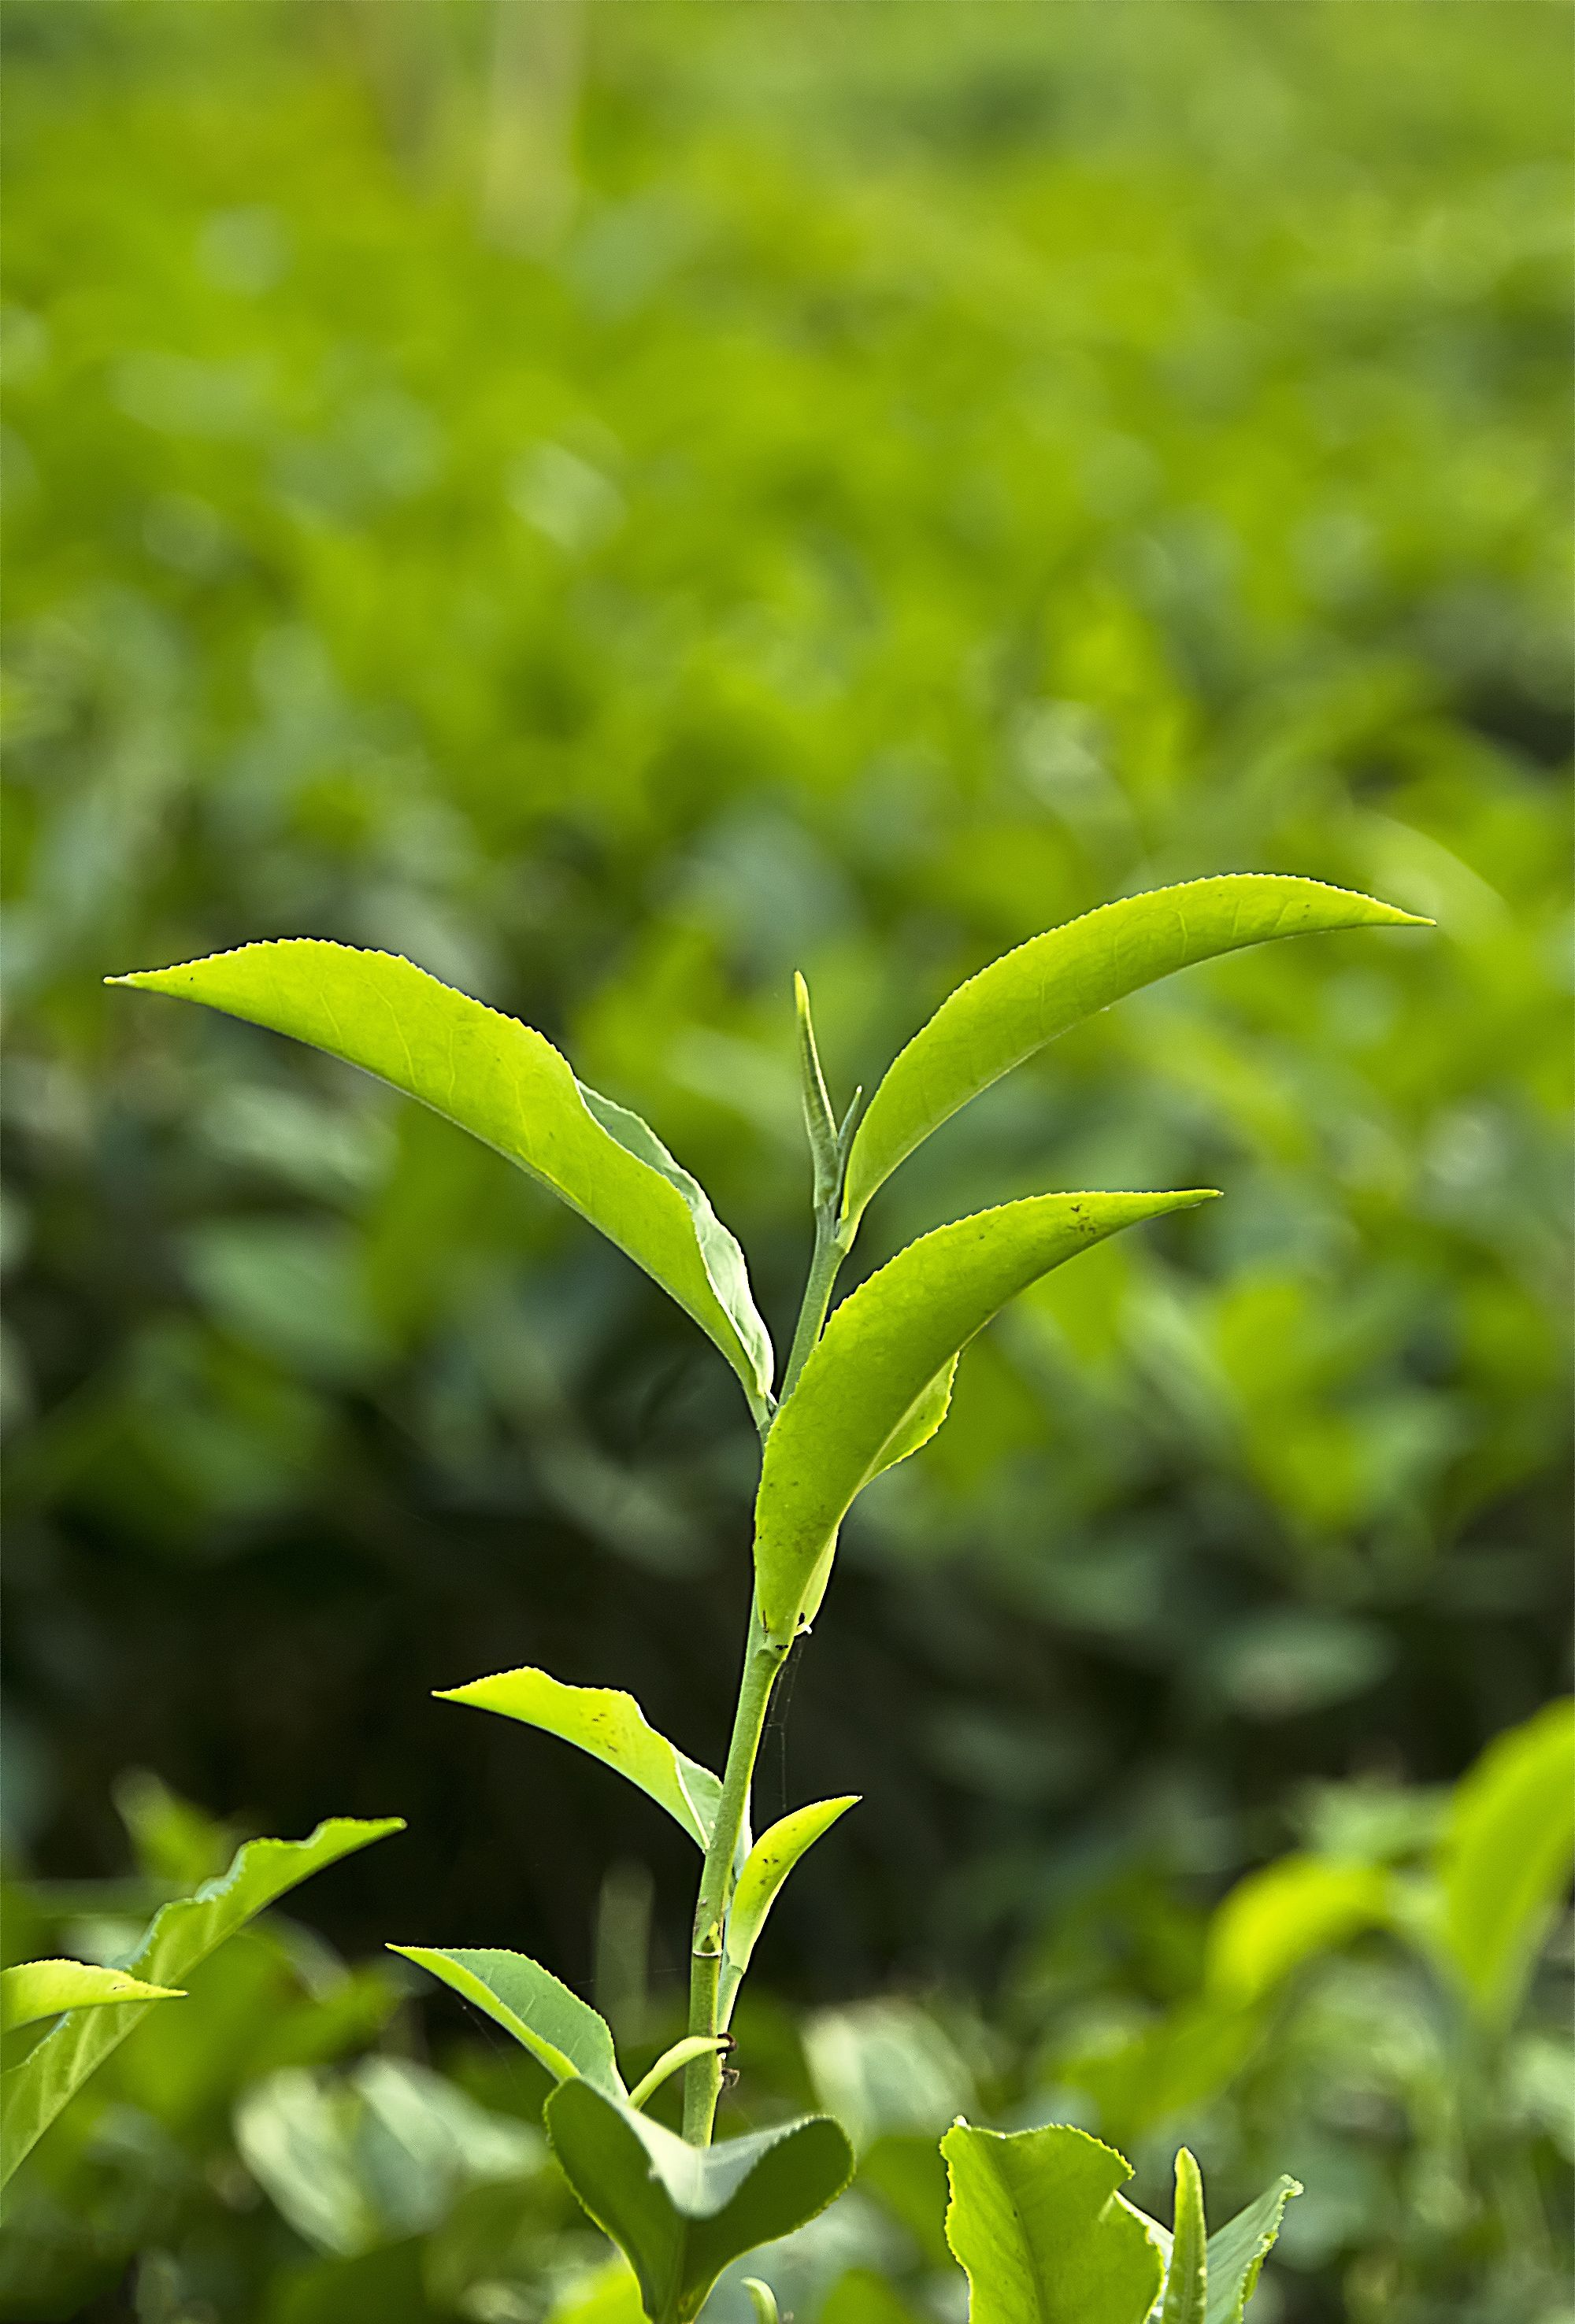 The Youngest Two Leaves And The Unopened Bud Are Picked To Produce The Highest Quality Teas Brewing Tea Bubble Tea Tea Plant